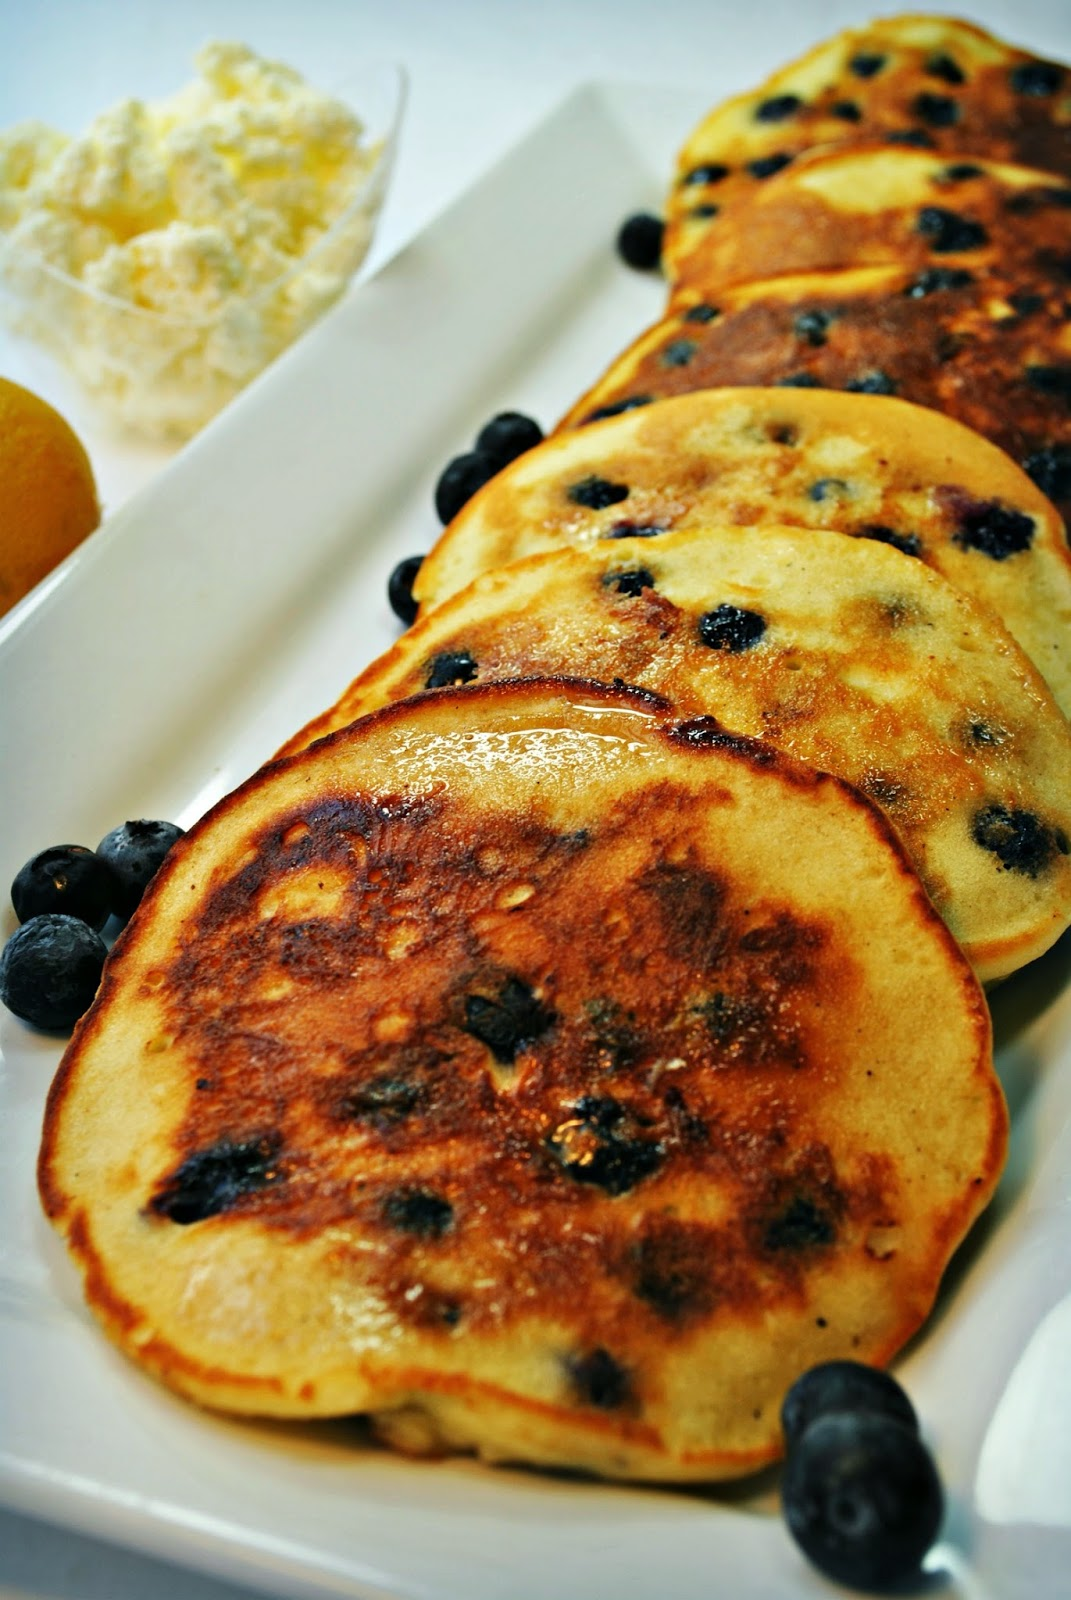 Blueberry Lemon and Ricotta Pancakes